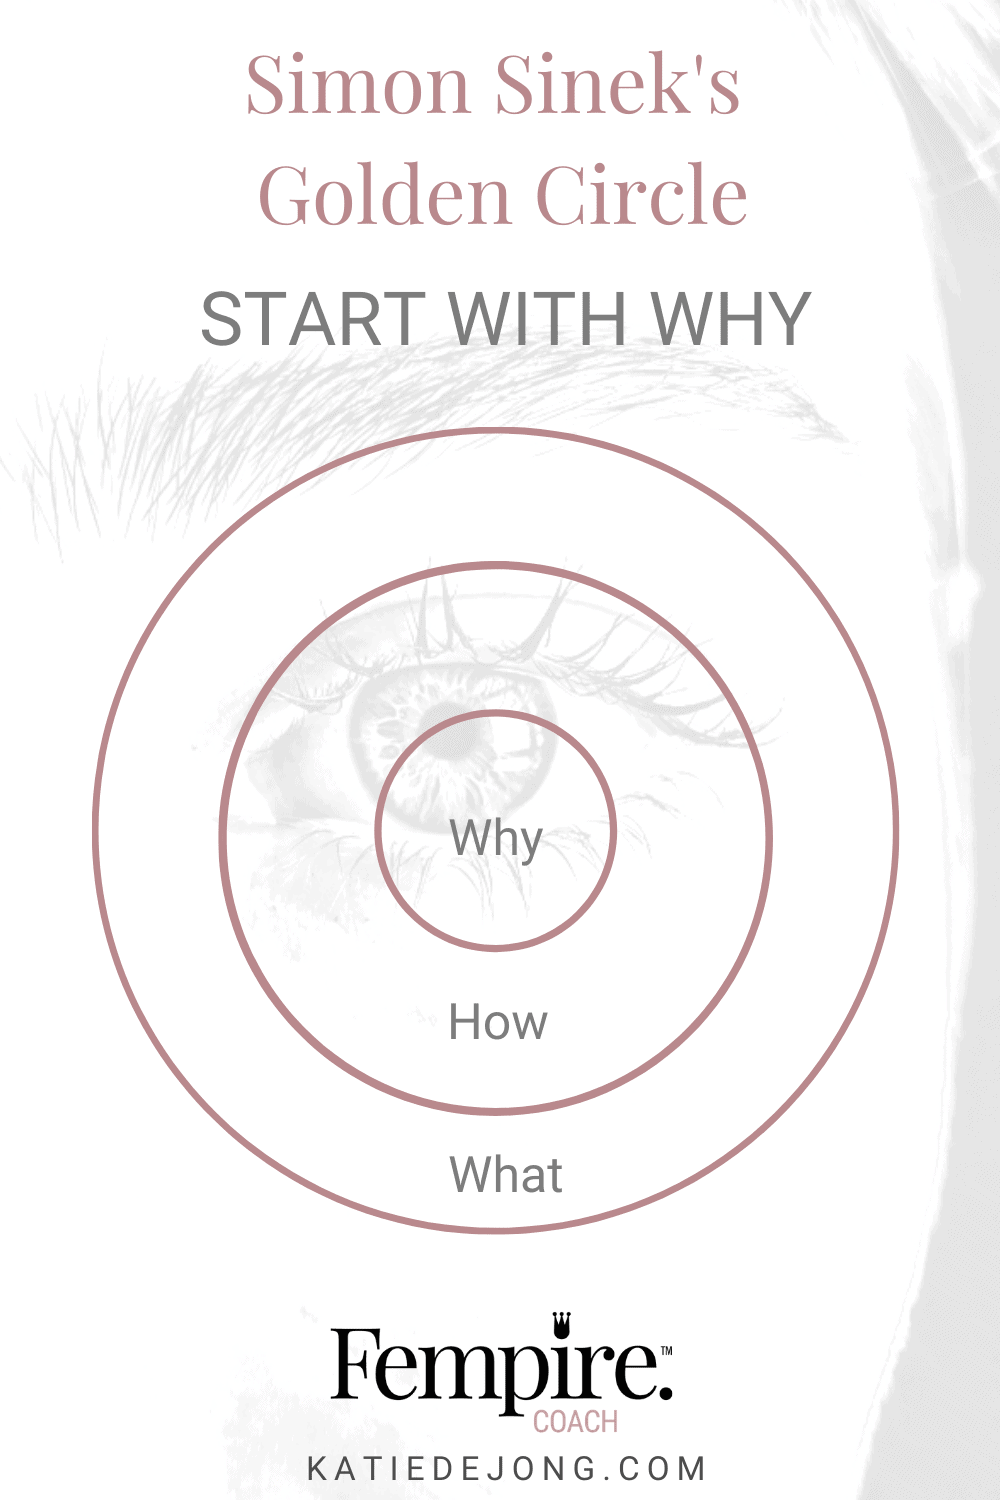 Simon Sinek's Golden Circle describes how the words 'why', 'how', and 'what' correspond to the different layers of the human brain, and why it's only the word 'why' that drives decisions and behaviours. Read on to discover how. #fempire #fempirecoach #womeninbusiness #ladyboss #womeninbusiness #womensupportingwomen #marketing #marketingstrategy #smallbusiness #successmindset #entrepreneur #success #businessgrowth